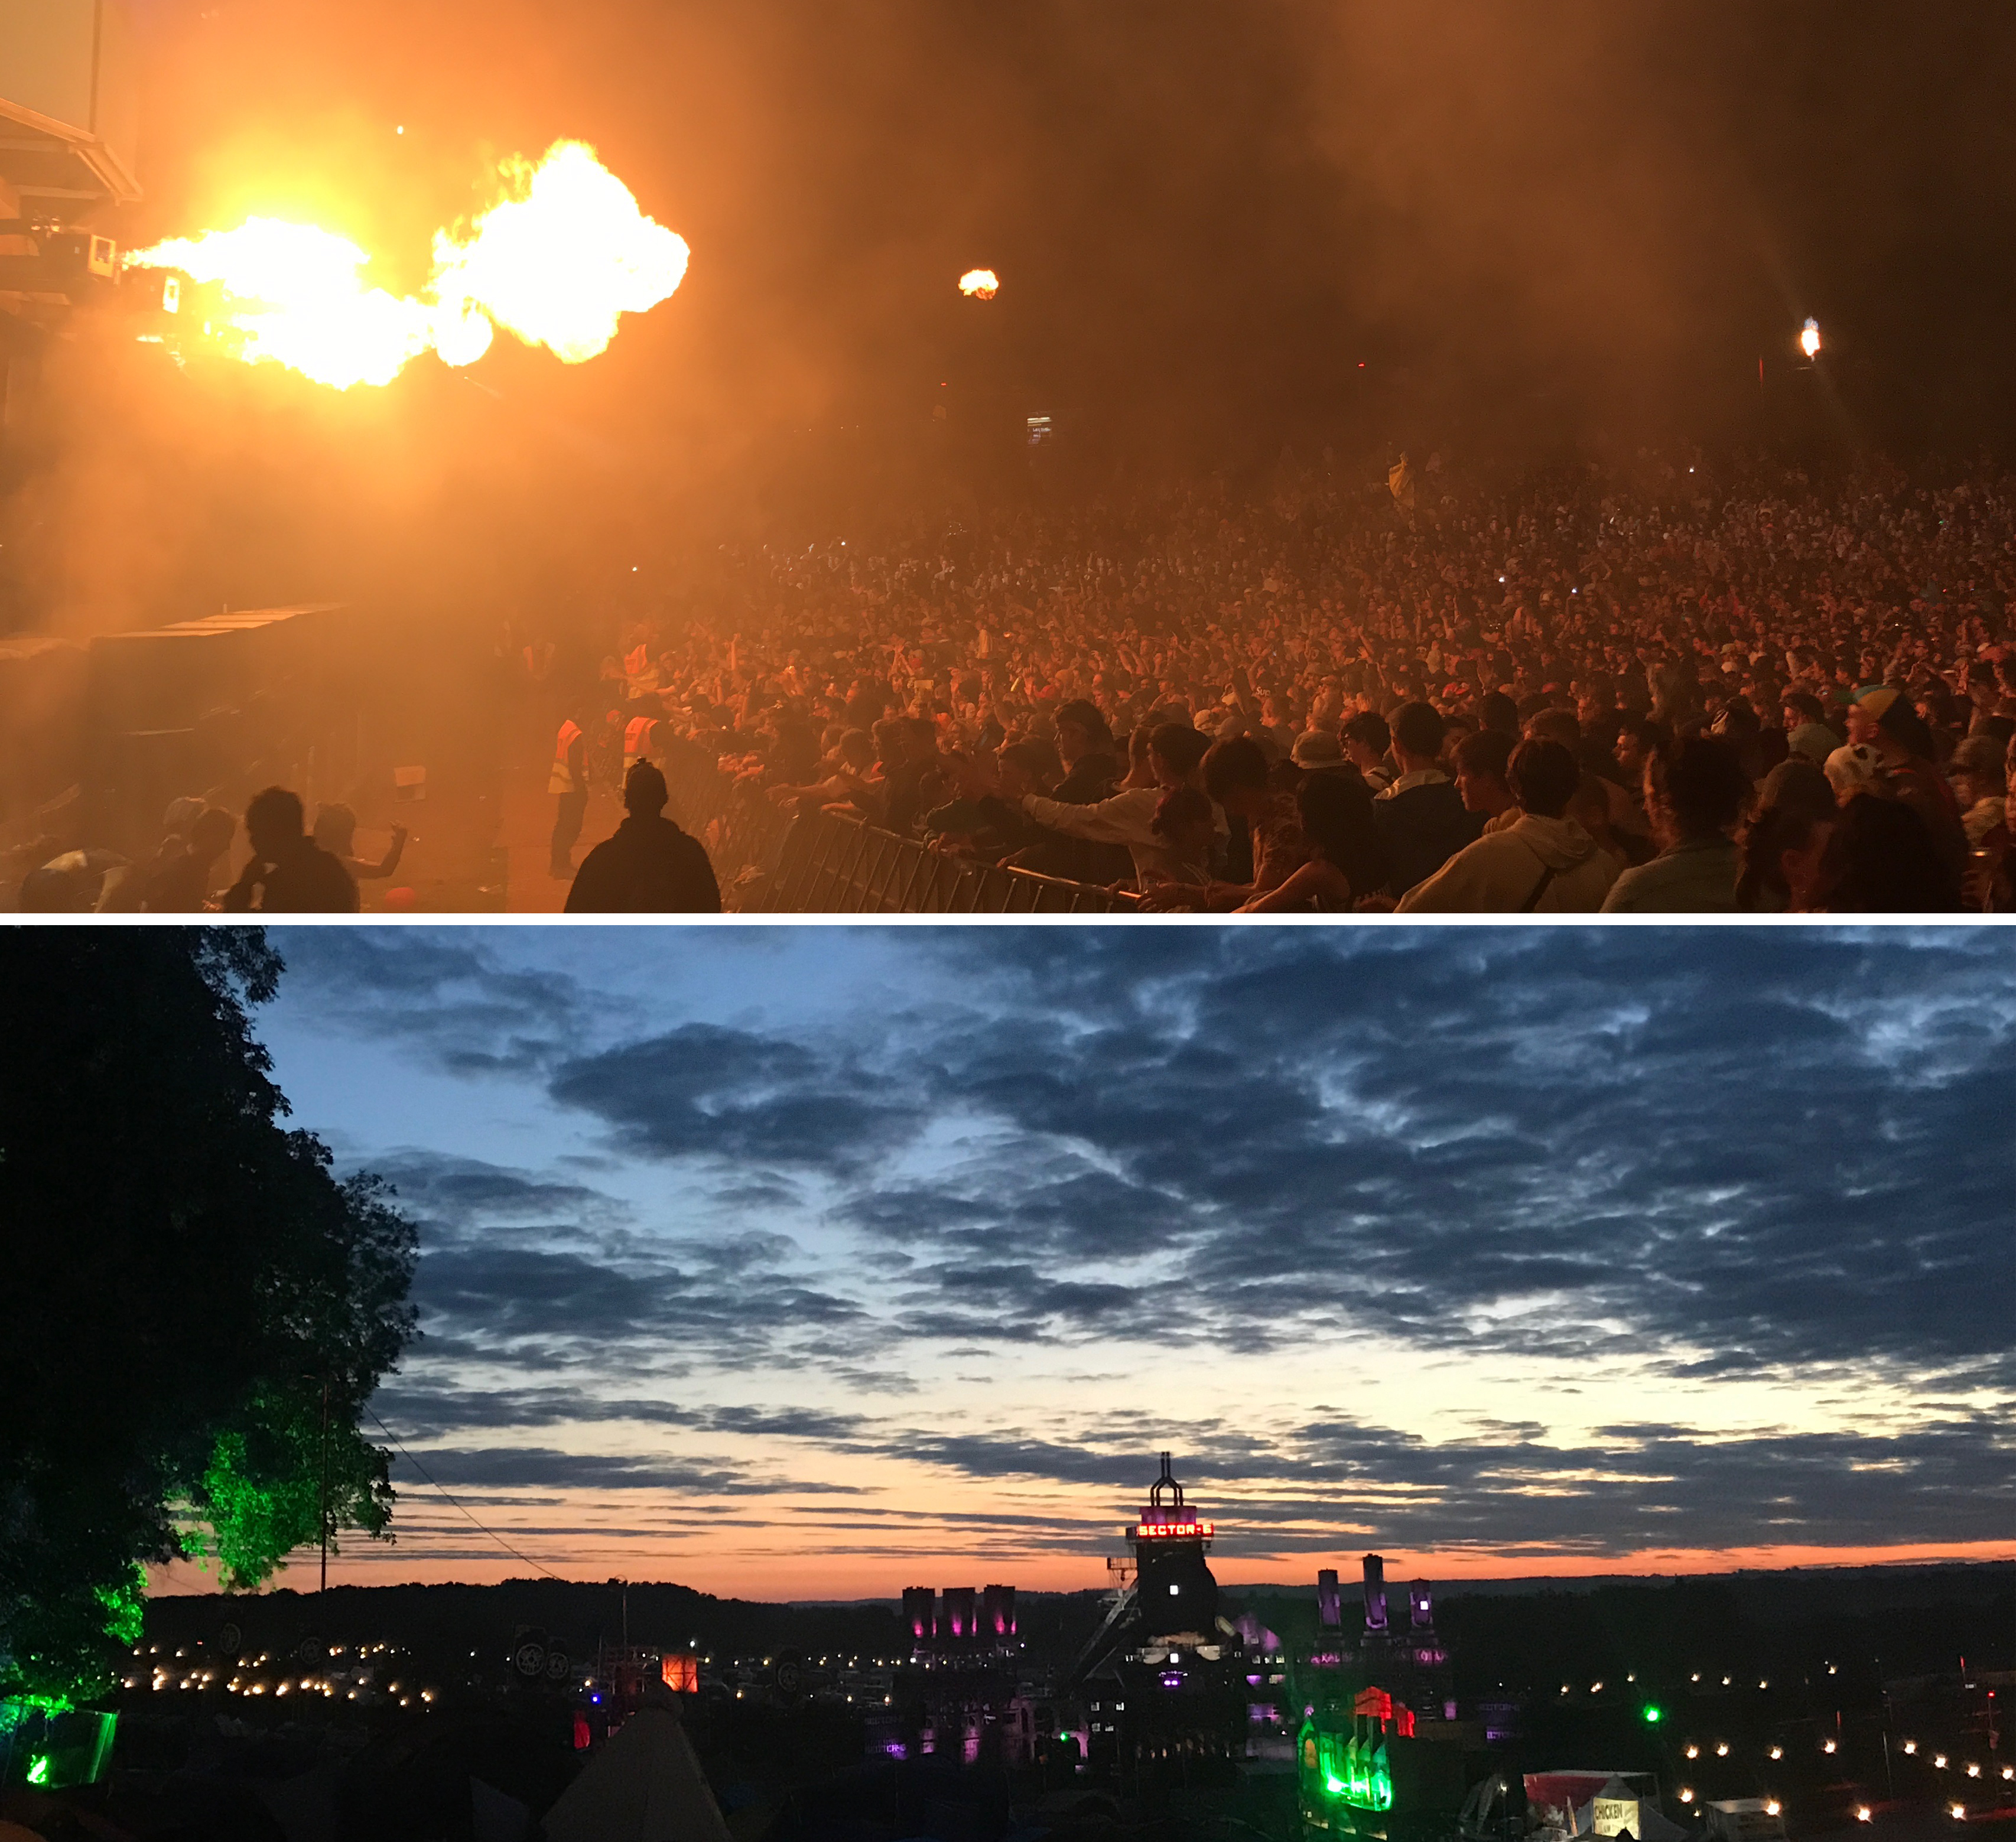 Sector 6 with flames over the crowd and the sunrise over the campsite at Boomtown Fair UK festival